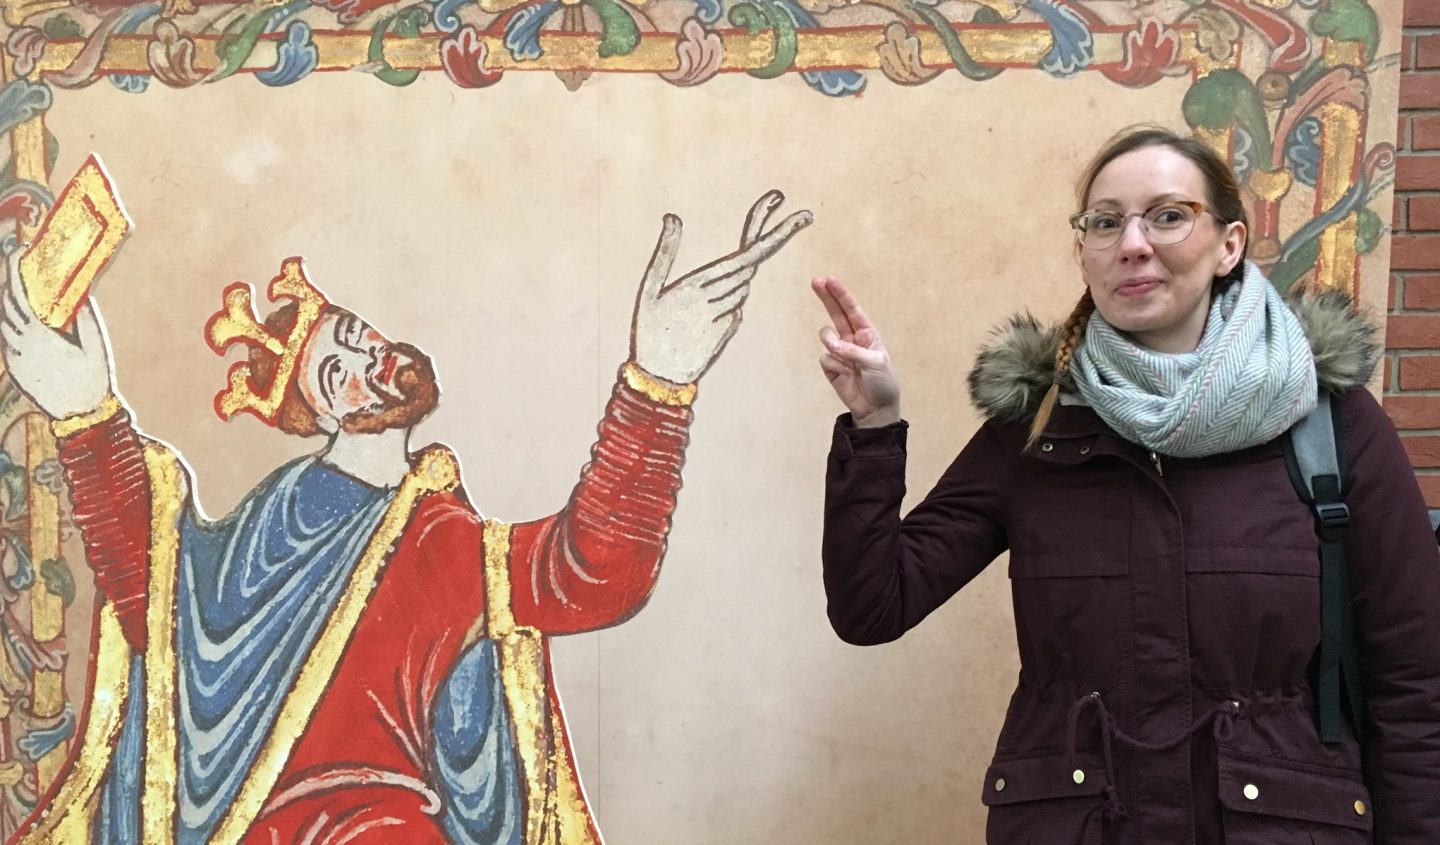 A visit to the 'Anglo-Saxon Kingdoms' exhibition - January 2019